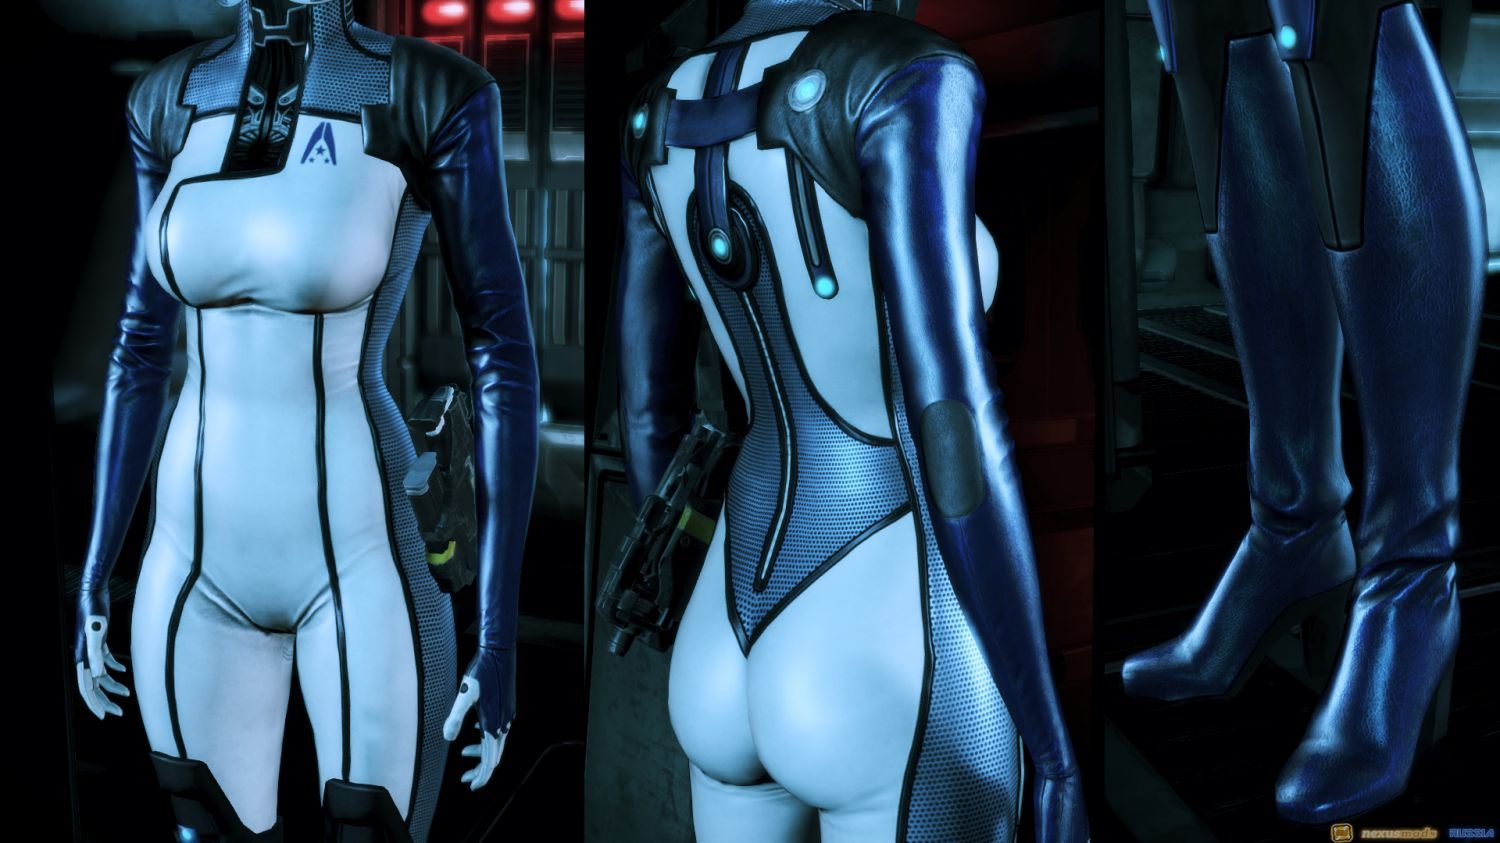 Ashley williams mass effect nude skins sex movie